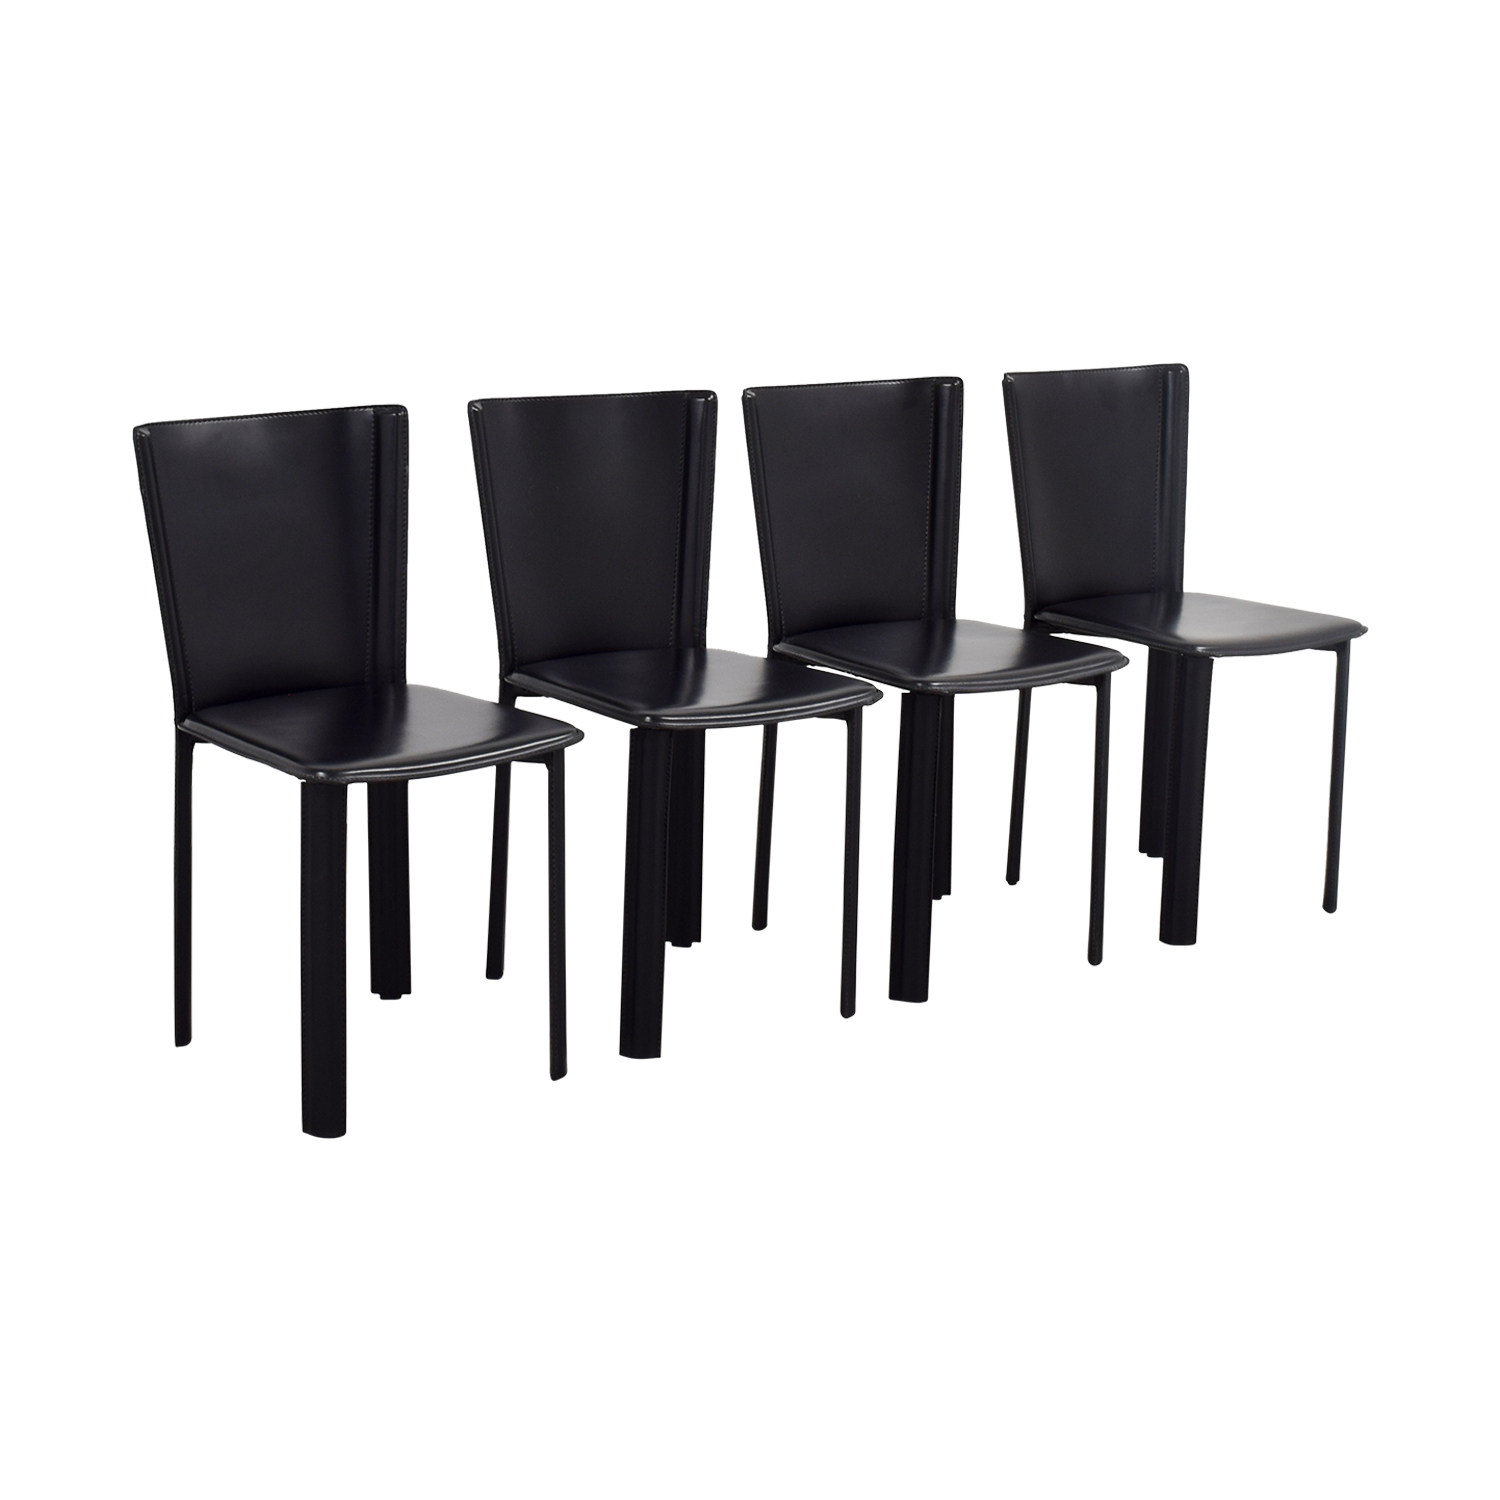 Design Within Reach Design Within Reach Allegro Black Dining Chairs used